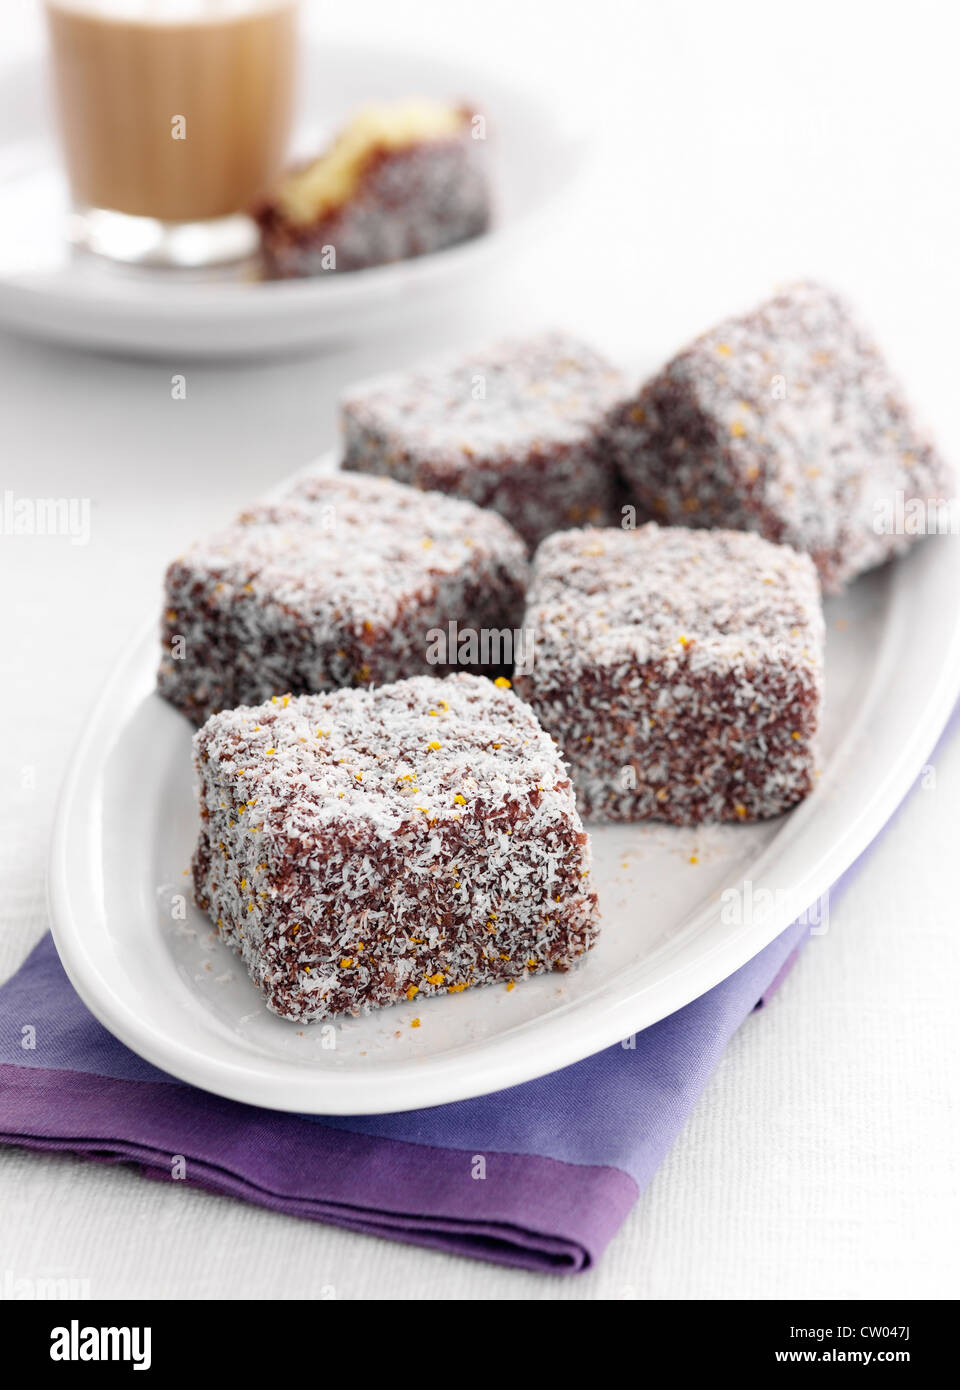 Plate of lamingtons cookies - Stock Image